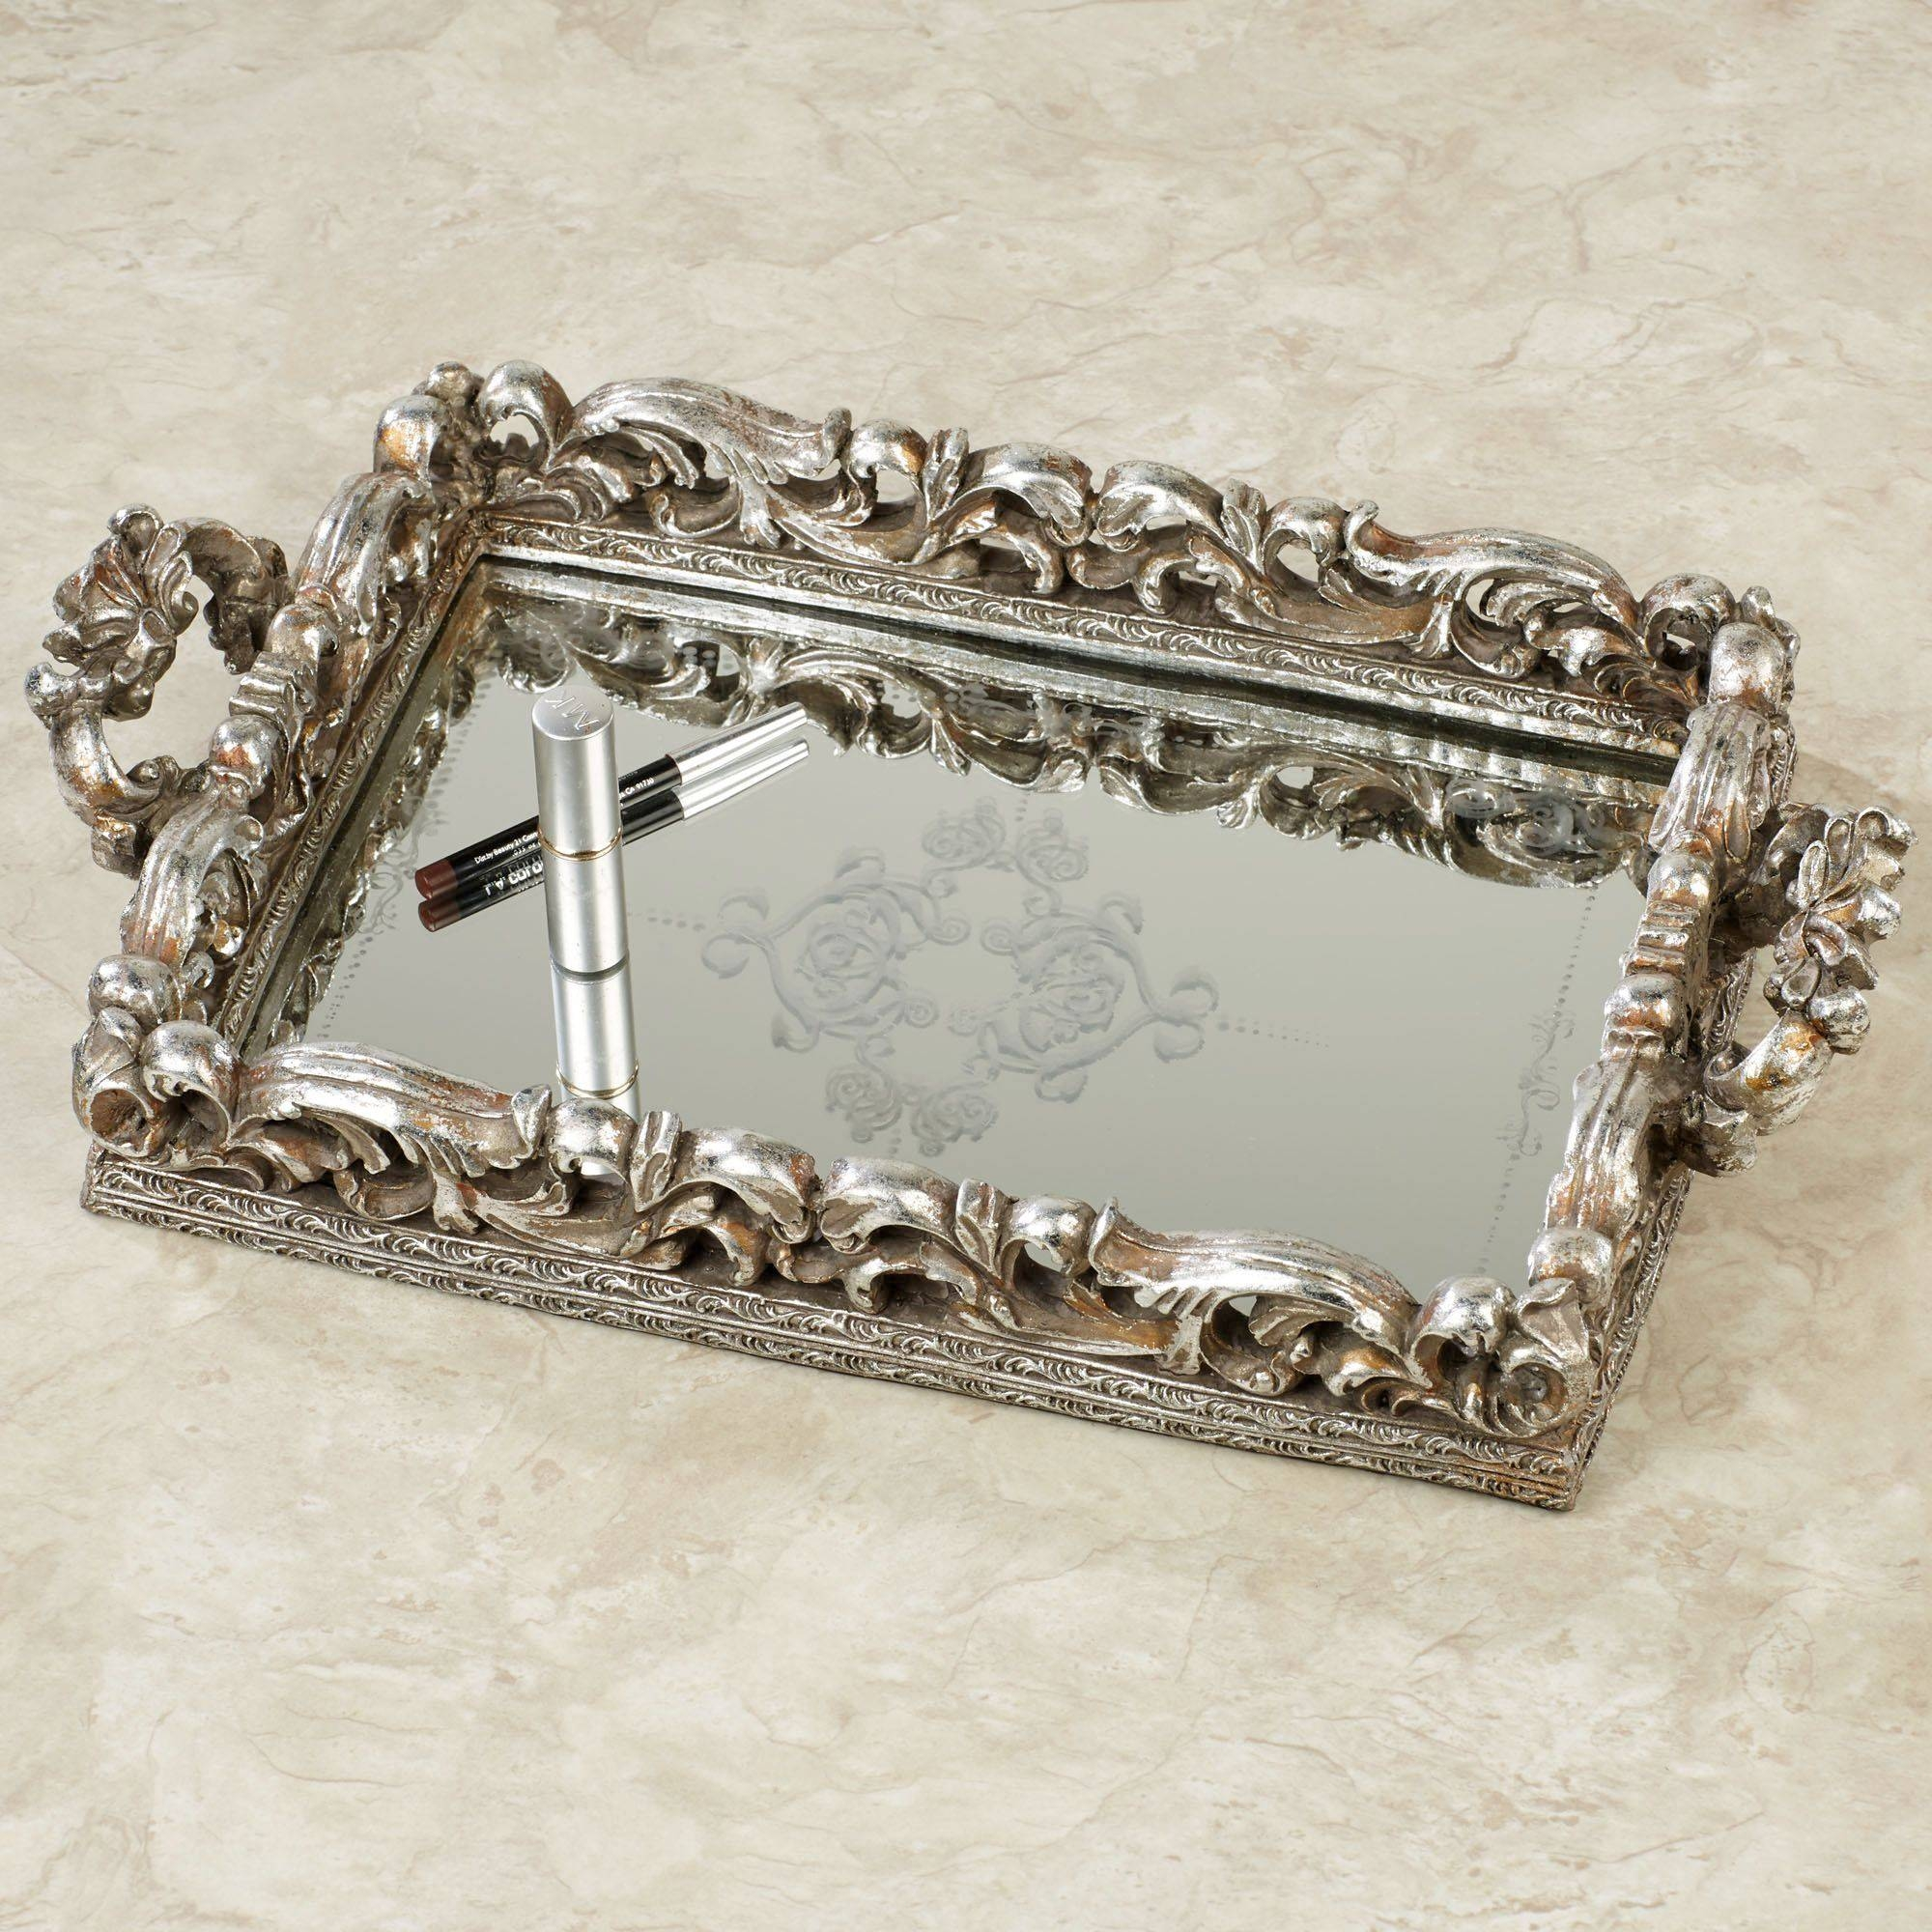 Crystal Clear Vanity Tray Mirror | Creative Vanity Decoration pertaining to Venetian Tray Mirrors (Image 8 of 25)